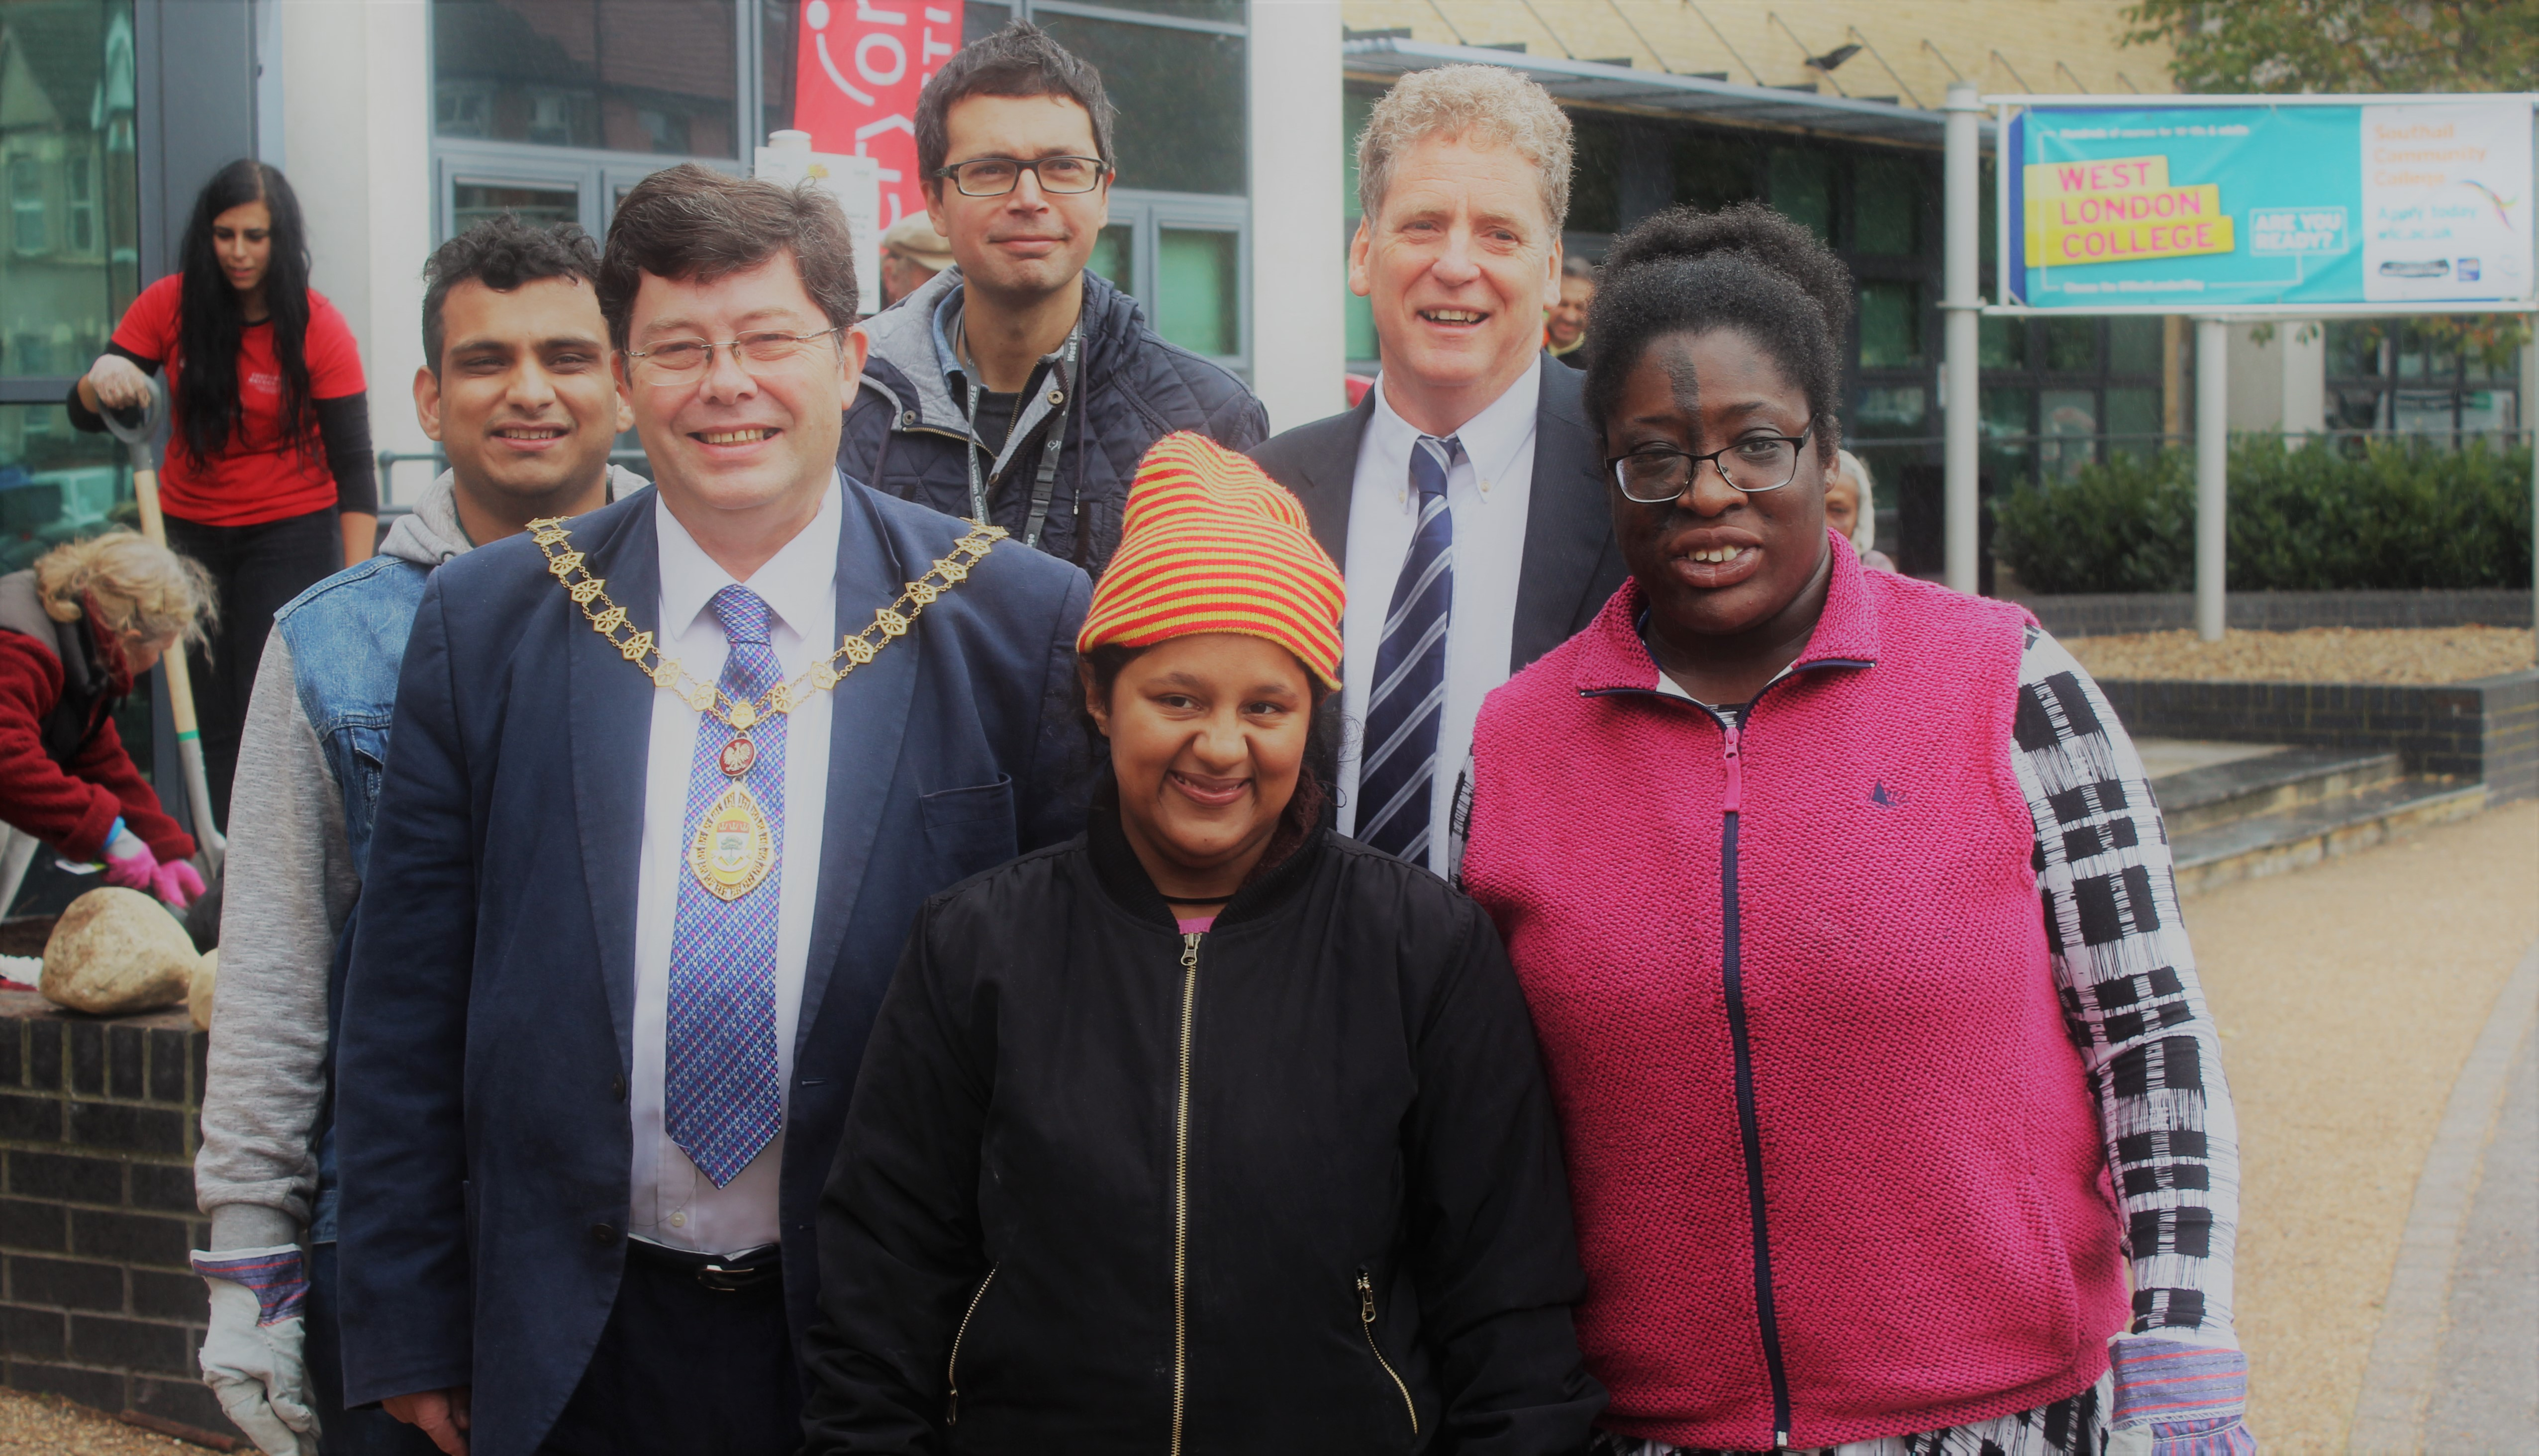 Ealing Mayor Simon Woodroofe with students from Southall Community College